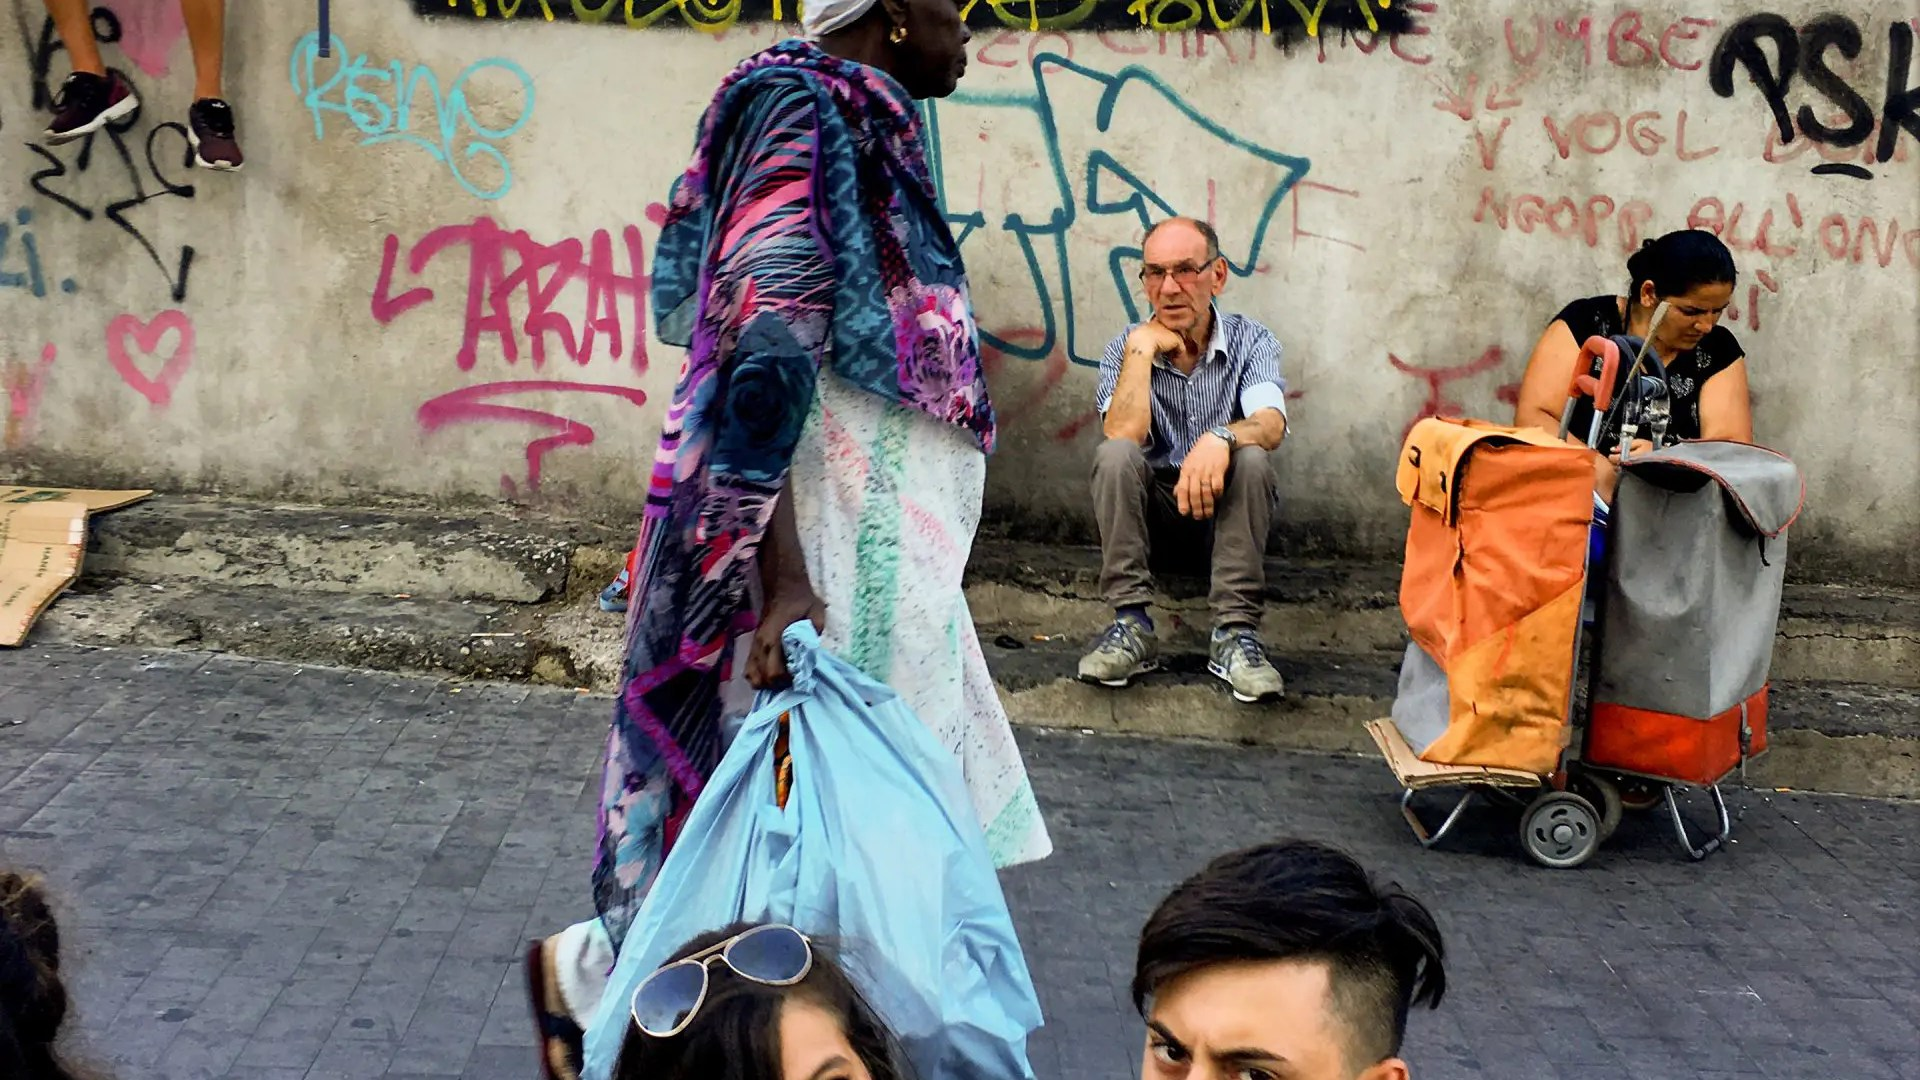 Naples mix of cultures, Naples, Italy. ph. courtesy of ©Robert Herman